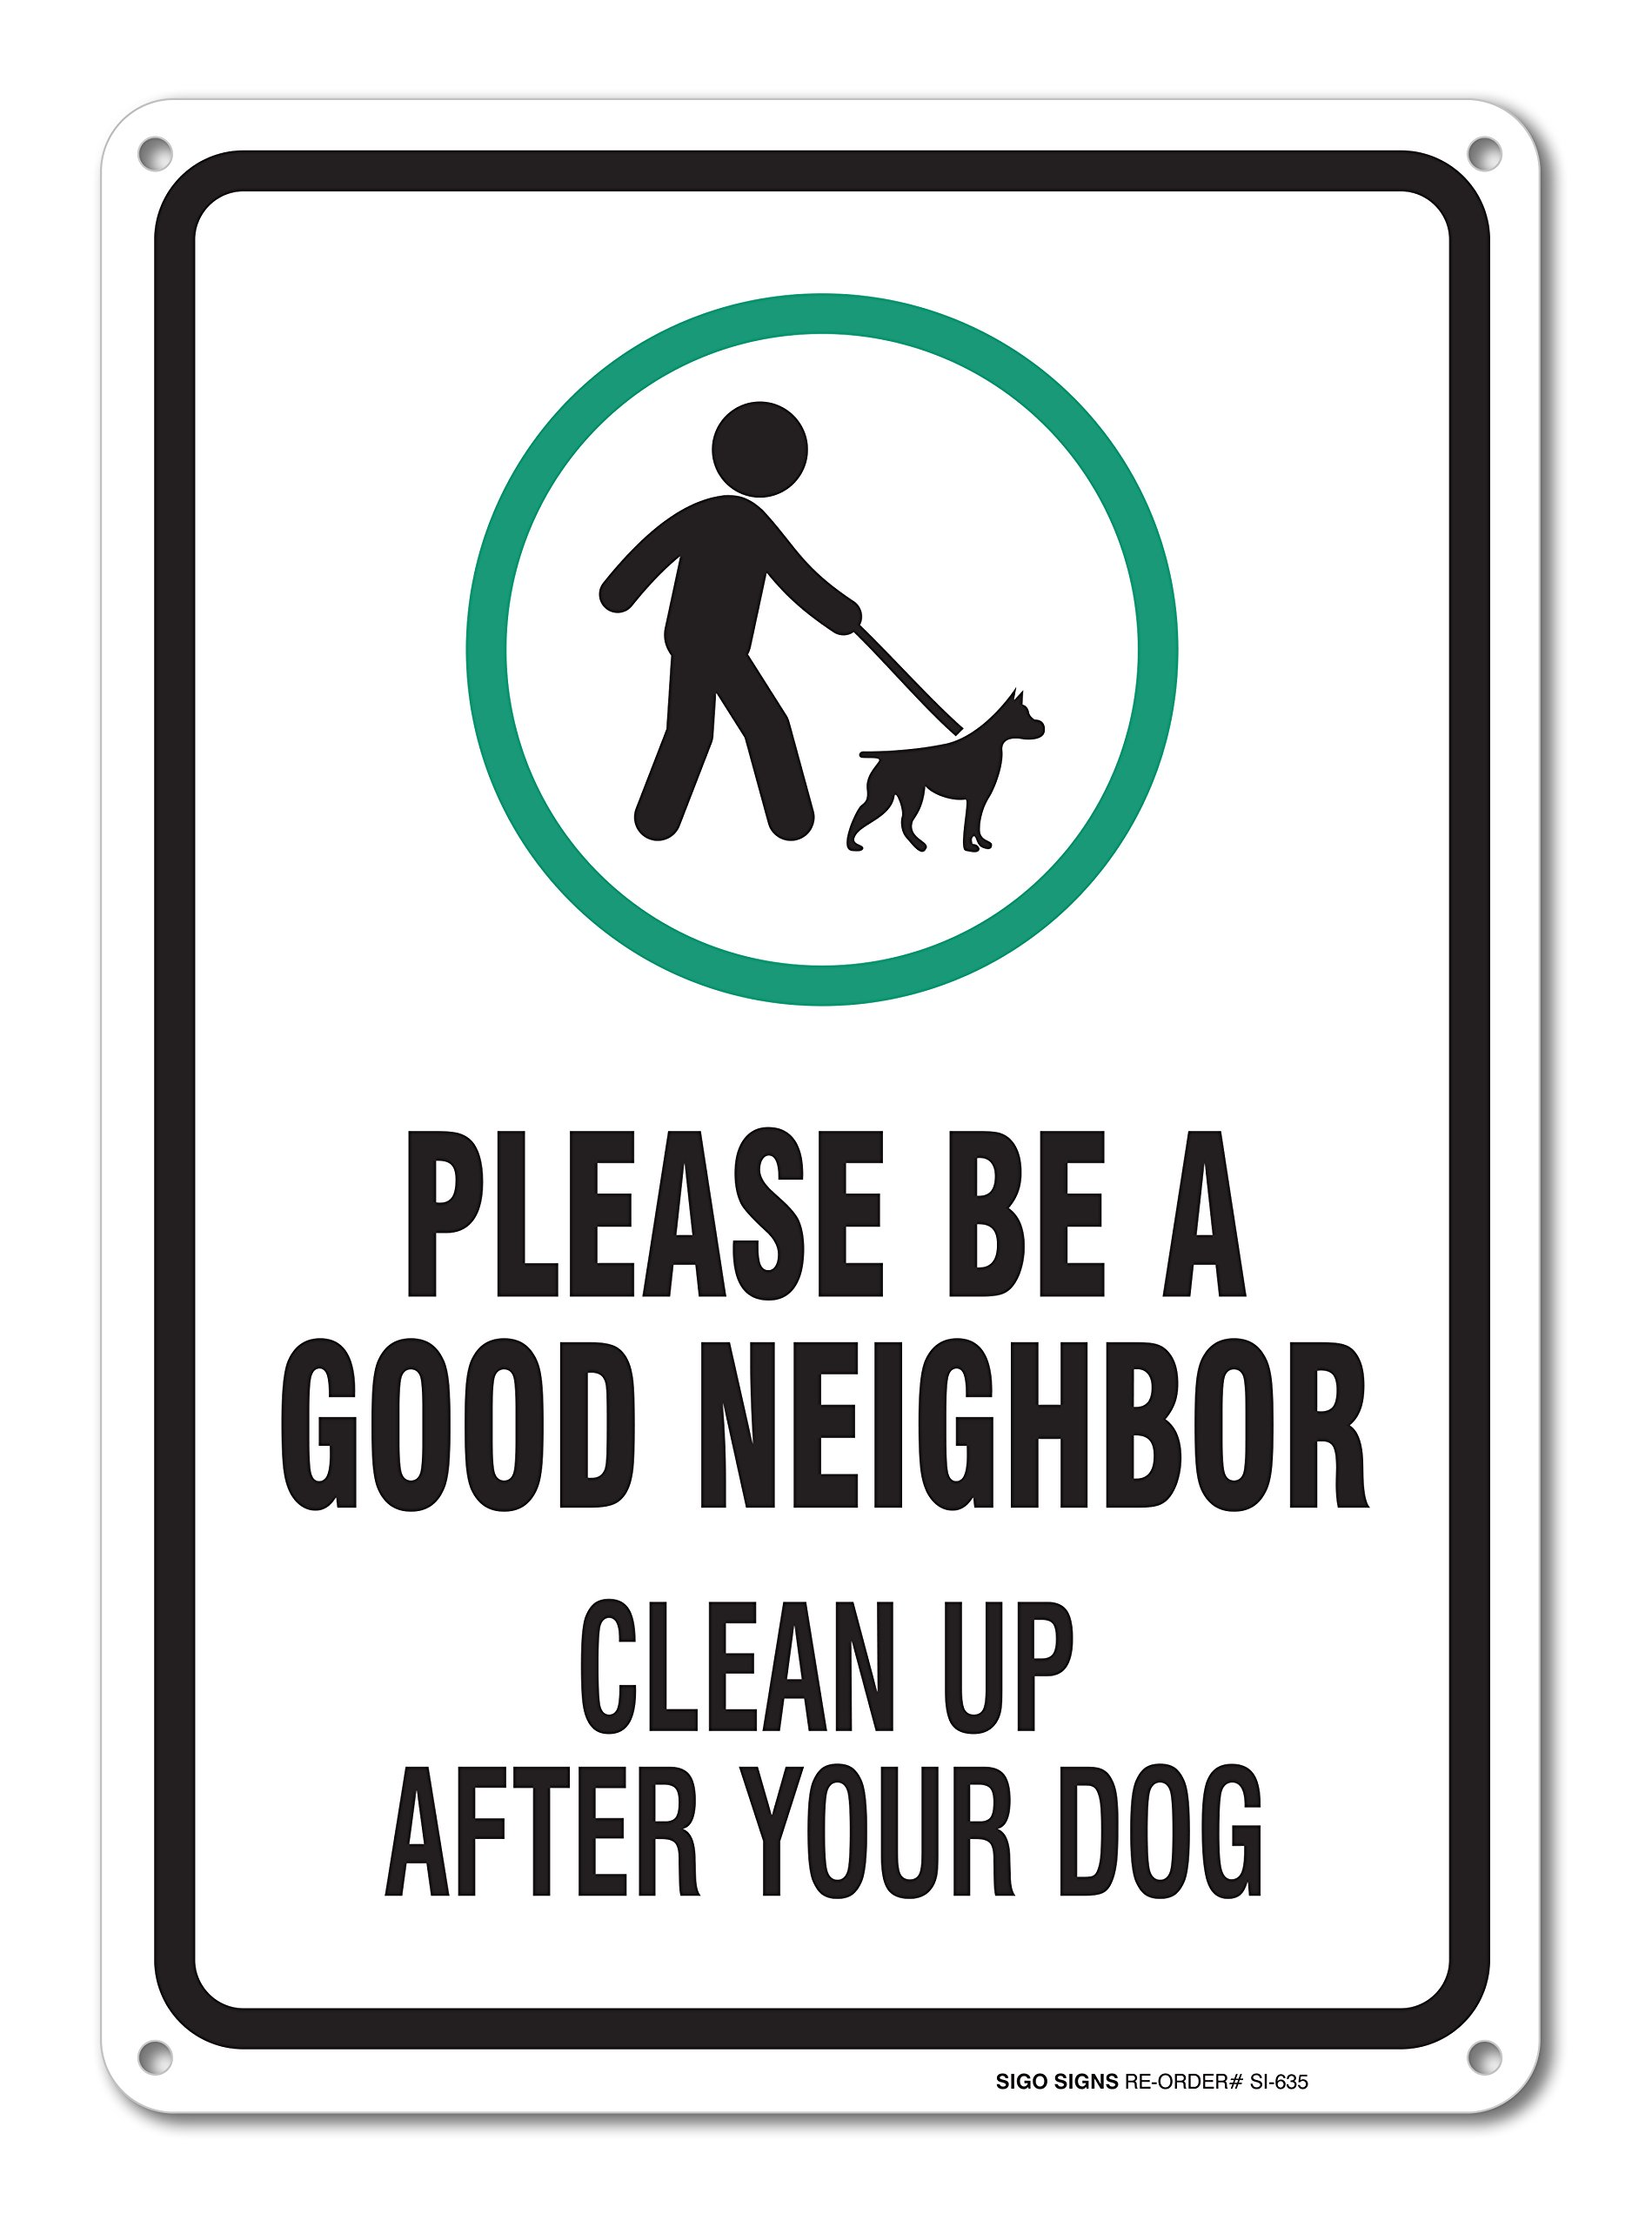 Clean Up After Your Dog Sign, Legend Be A Good Neighbor Clean Up After Your Dog with Graphic, 14'' high x 10'' wide, Black/Green on White, Rust Free Aluminum Sign